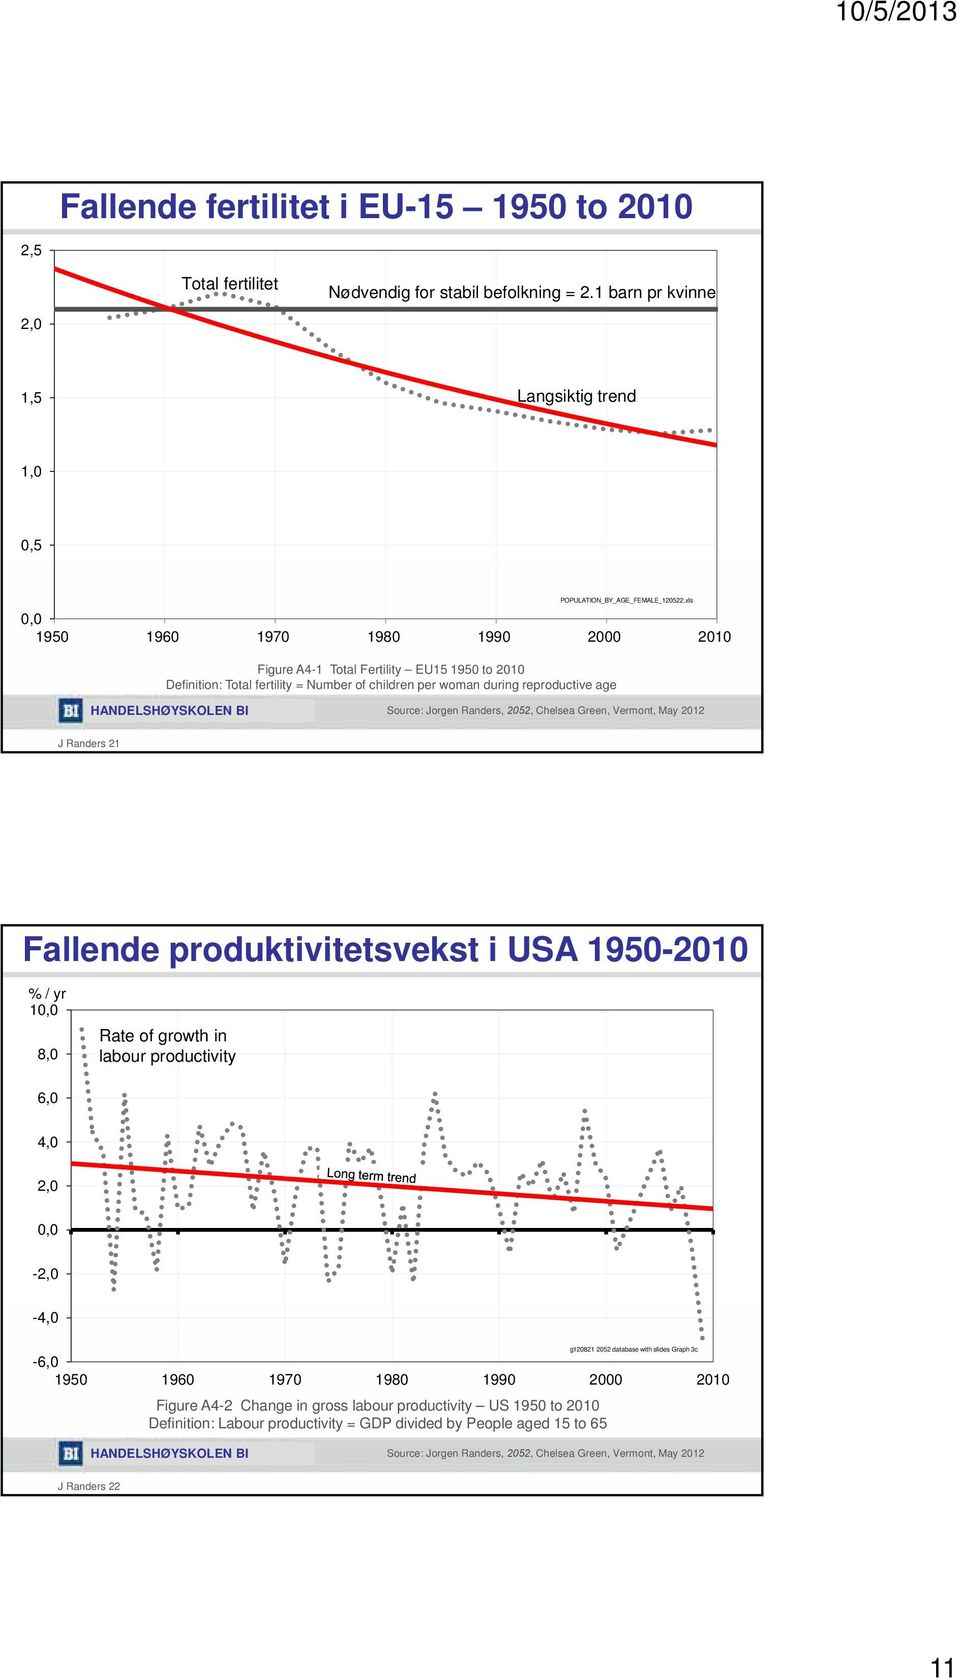 Green, Vermont, May J Randers Fallende produktivitetsvekst i USA 9- % / yr, 8, Rate of growth in labour productivity 6,,,, -, -, g8 database with slides Graph c -6, 9 96